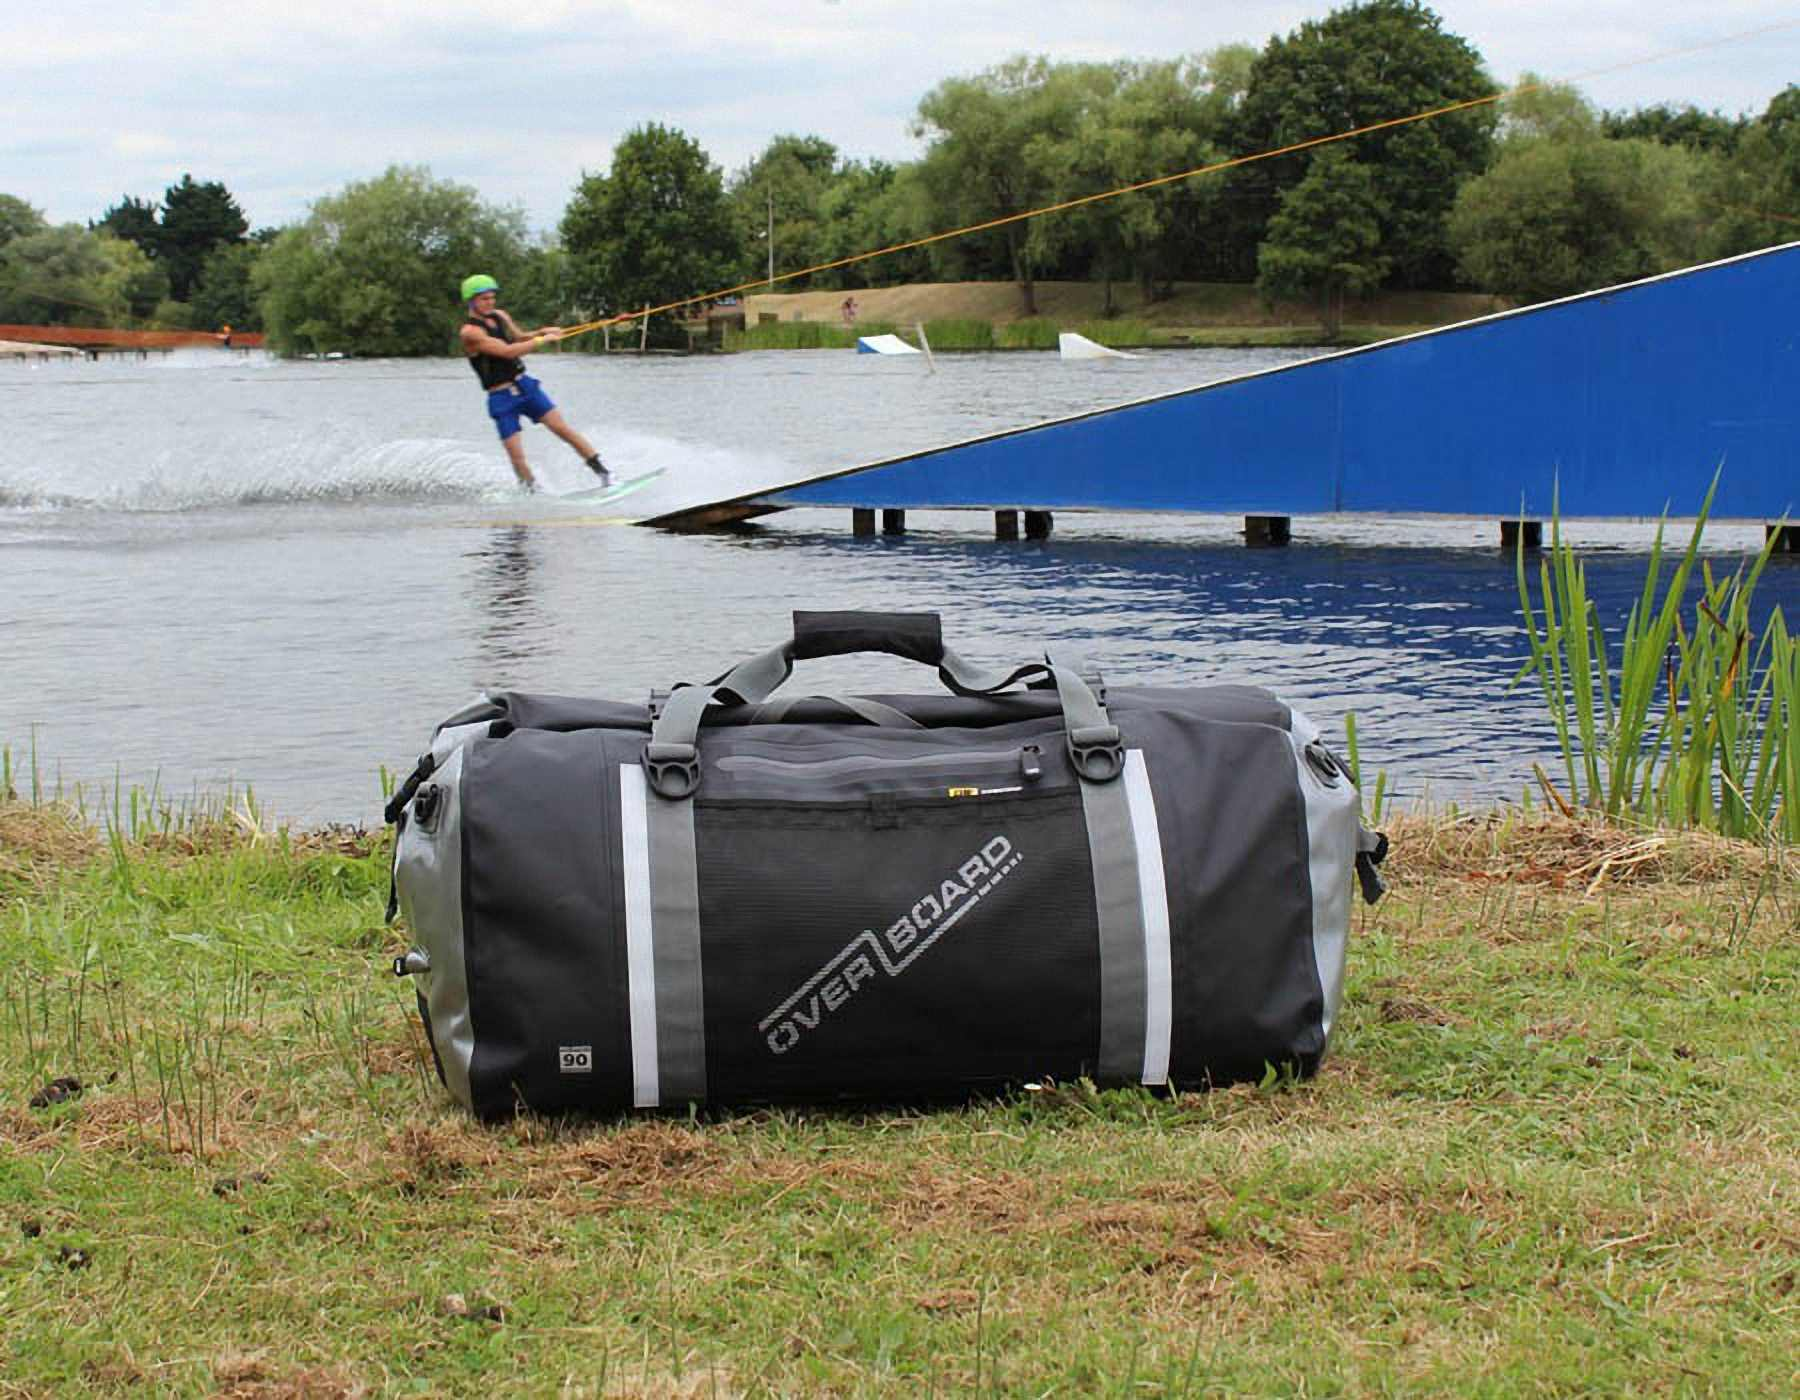 Водонепроницаемая сумка OverBoard OB1155BLK - Pro-Sports Waterproof Duffel Bag - 90 литров. Фото 10